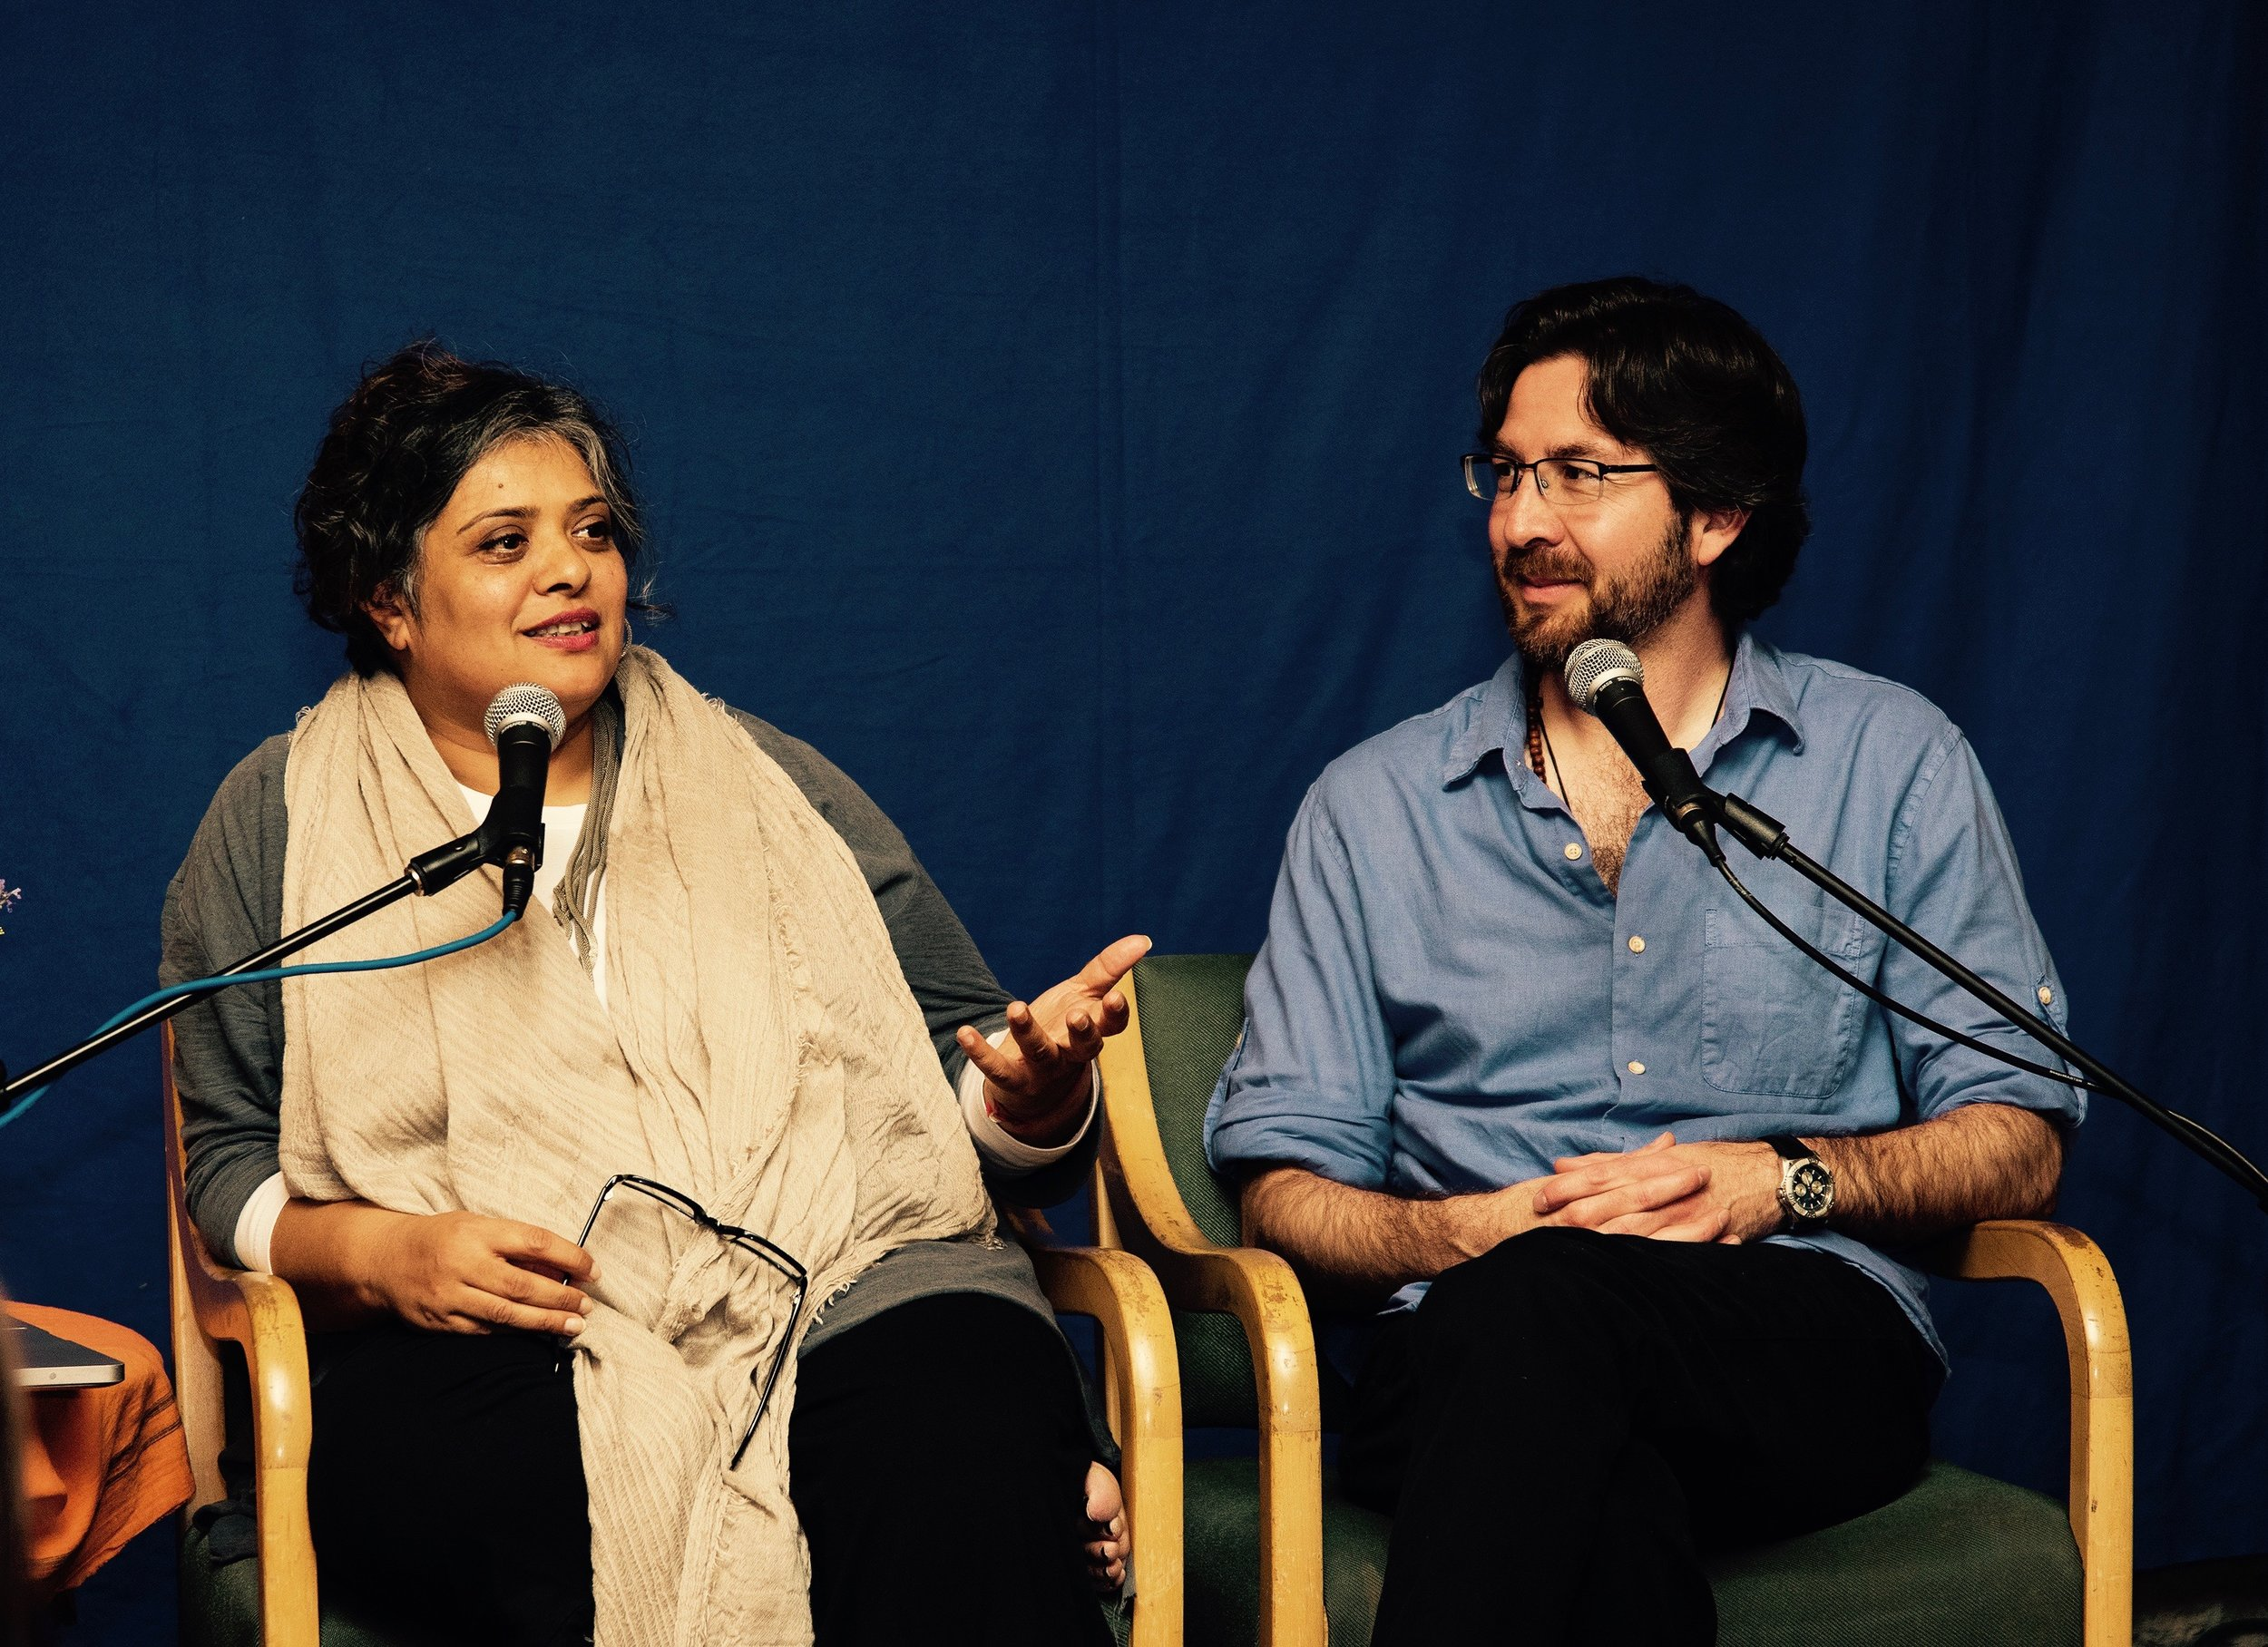 Deepa Patel and Netanel Miles-Yépez at the Abode of the Message, New Lebanon, NY. (H. Benas, 2015)